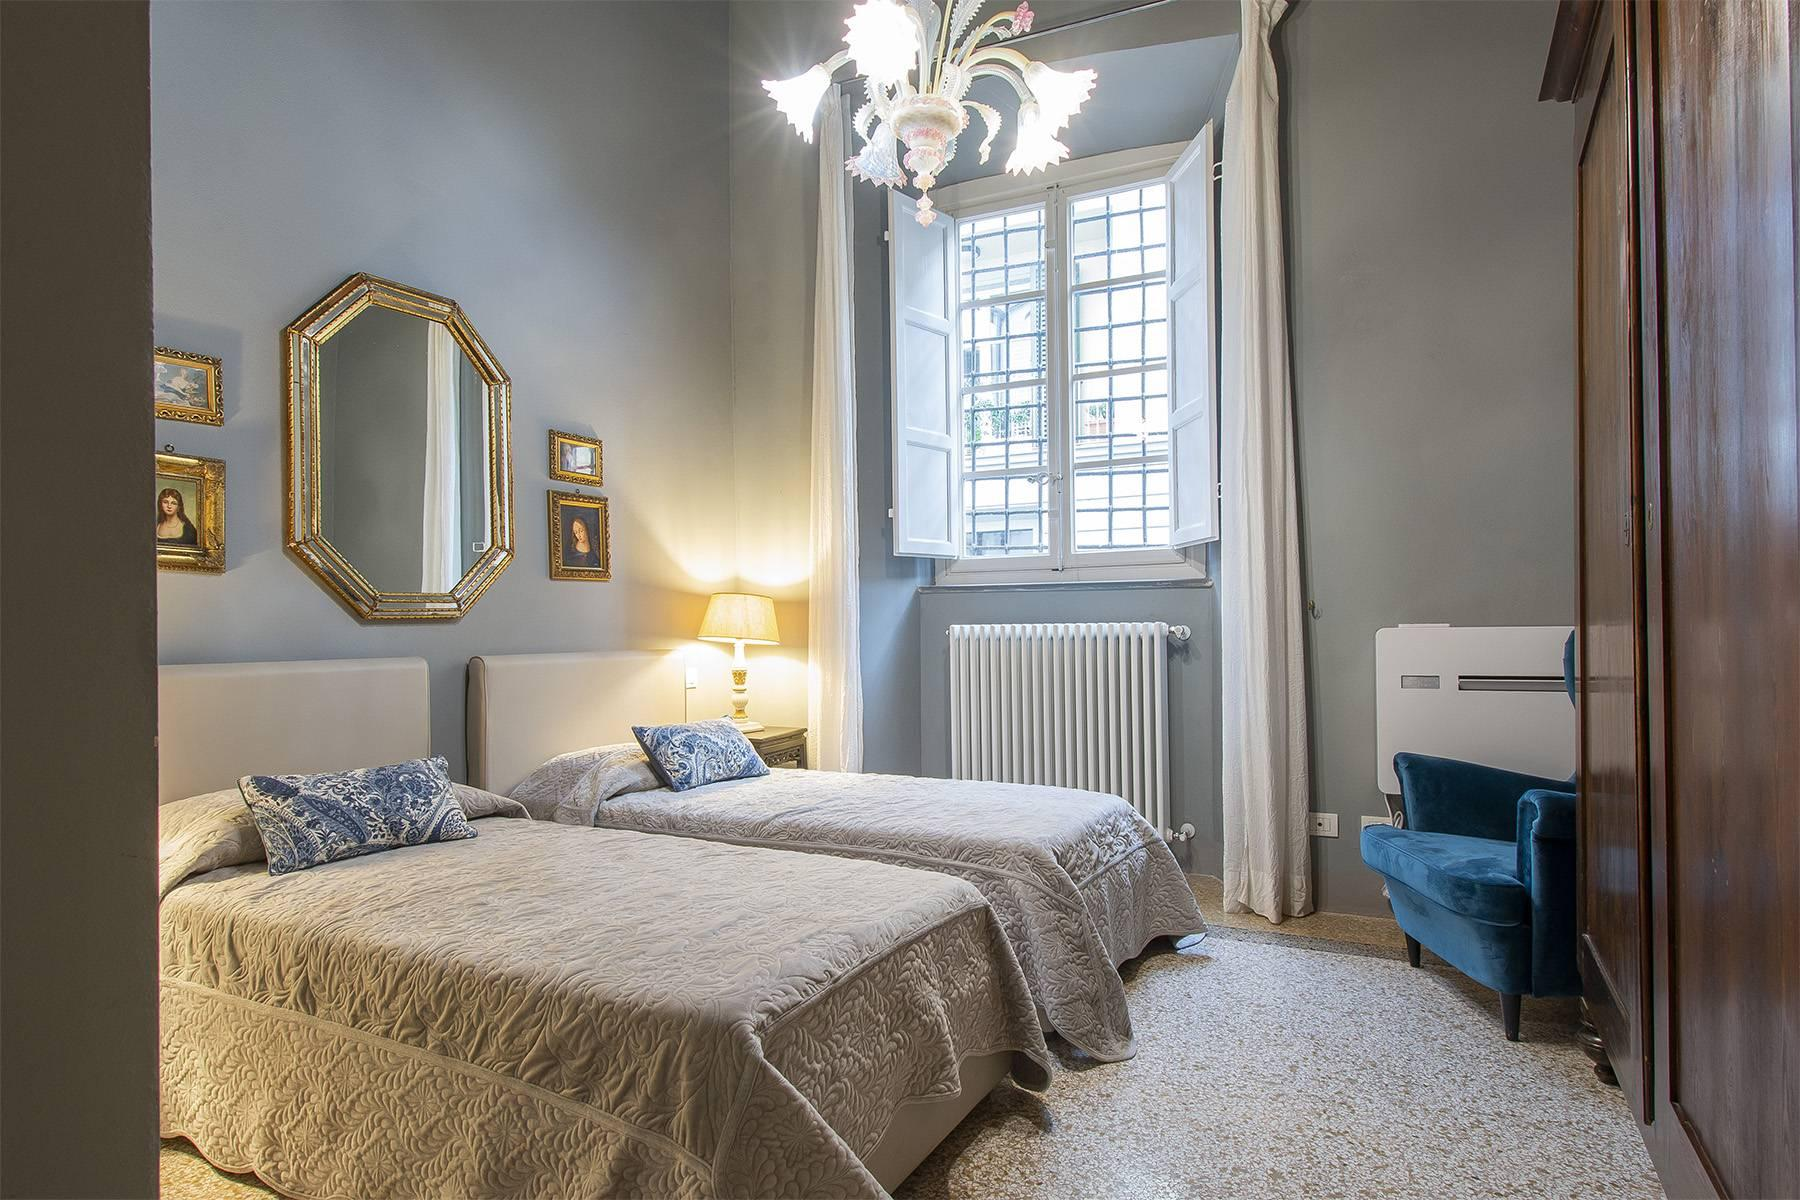 Exclusive apartment in the heart of Lucca - 12